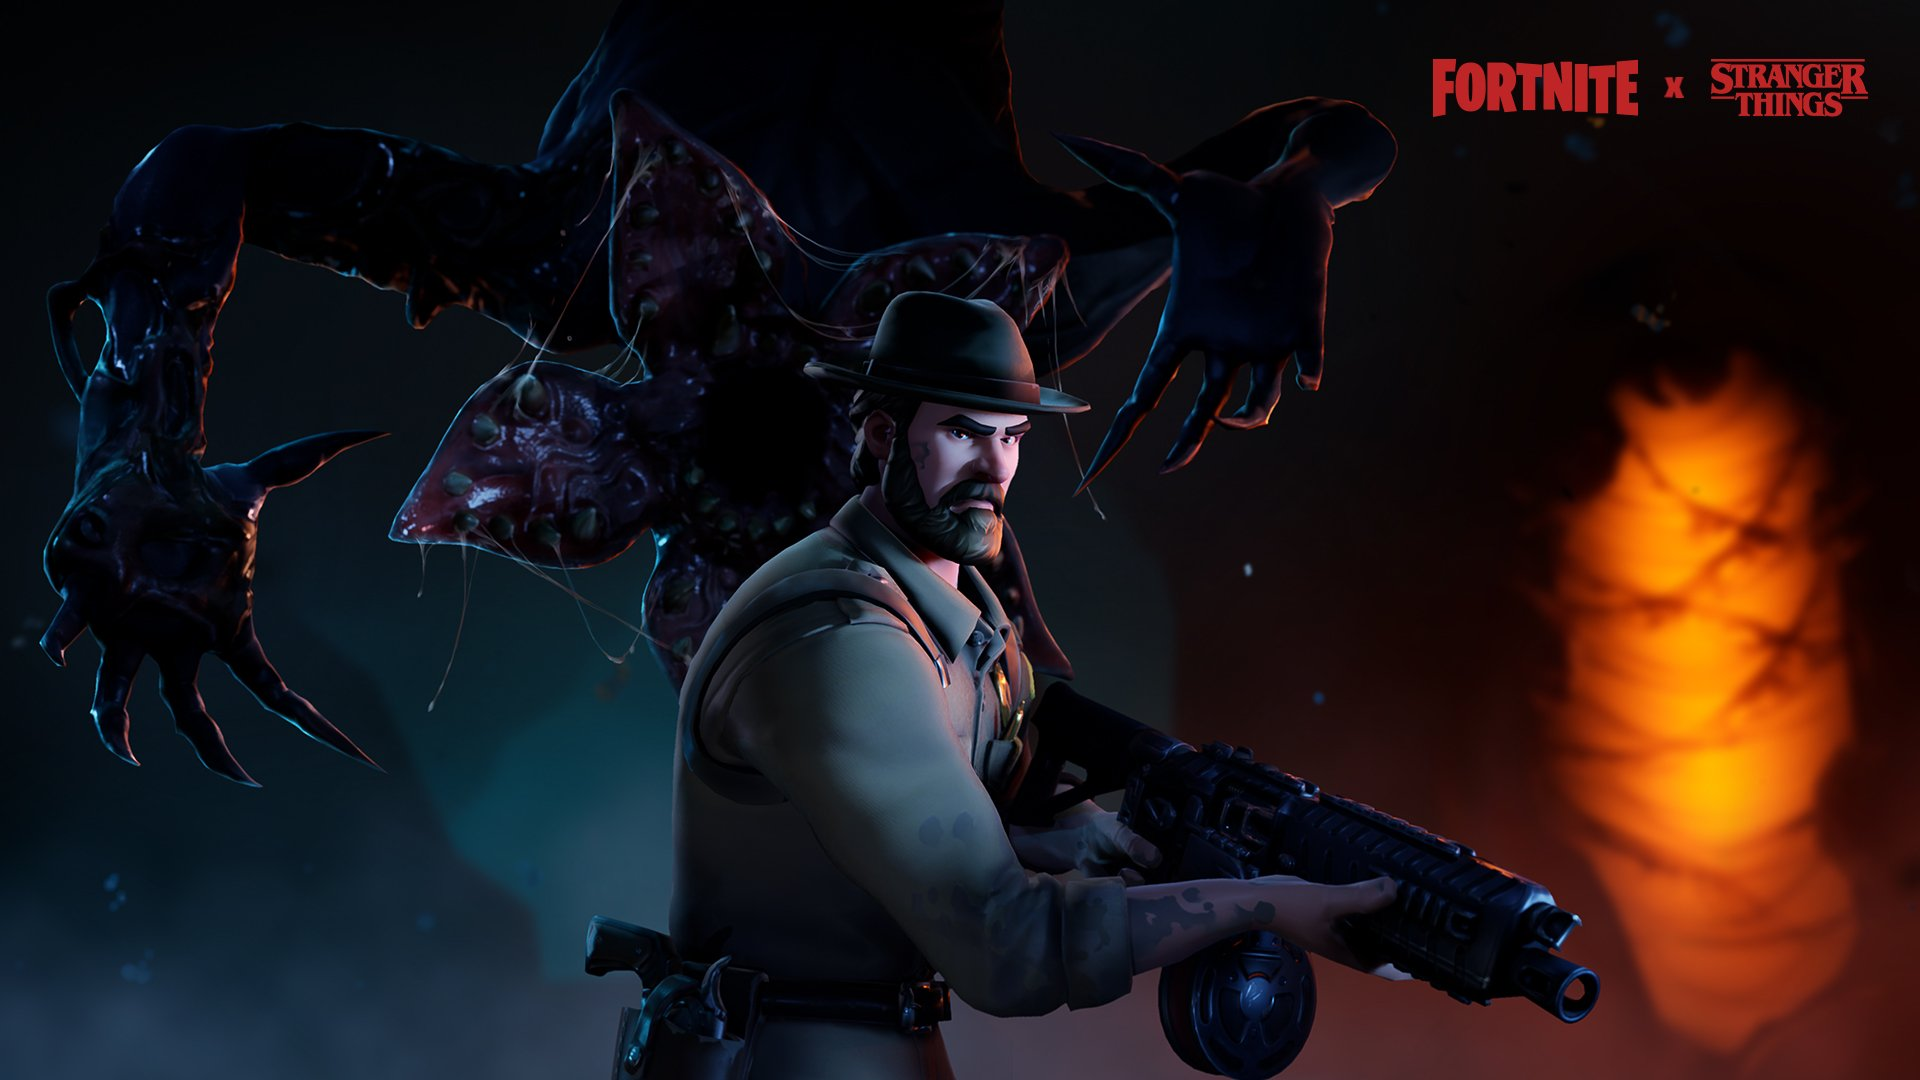 Fortnite x Stranger Things' crossover brings new skins to the battle